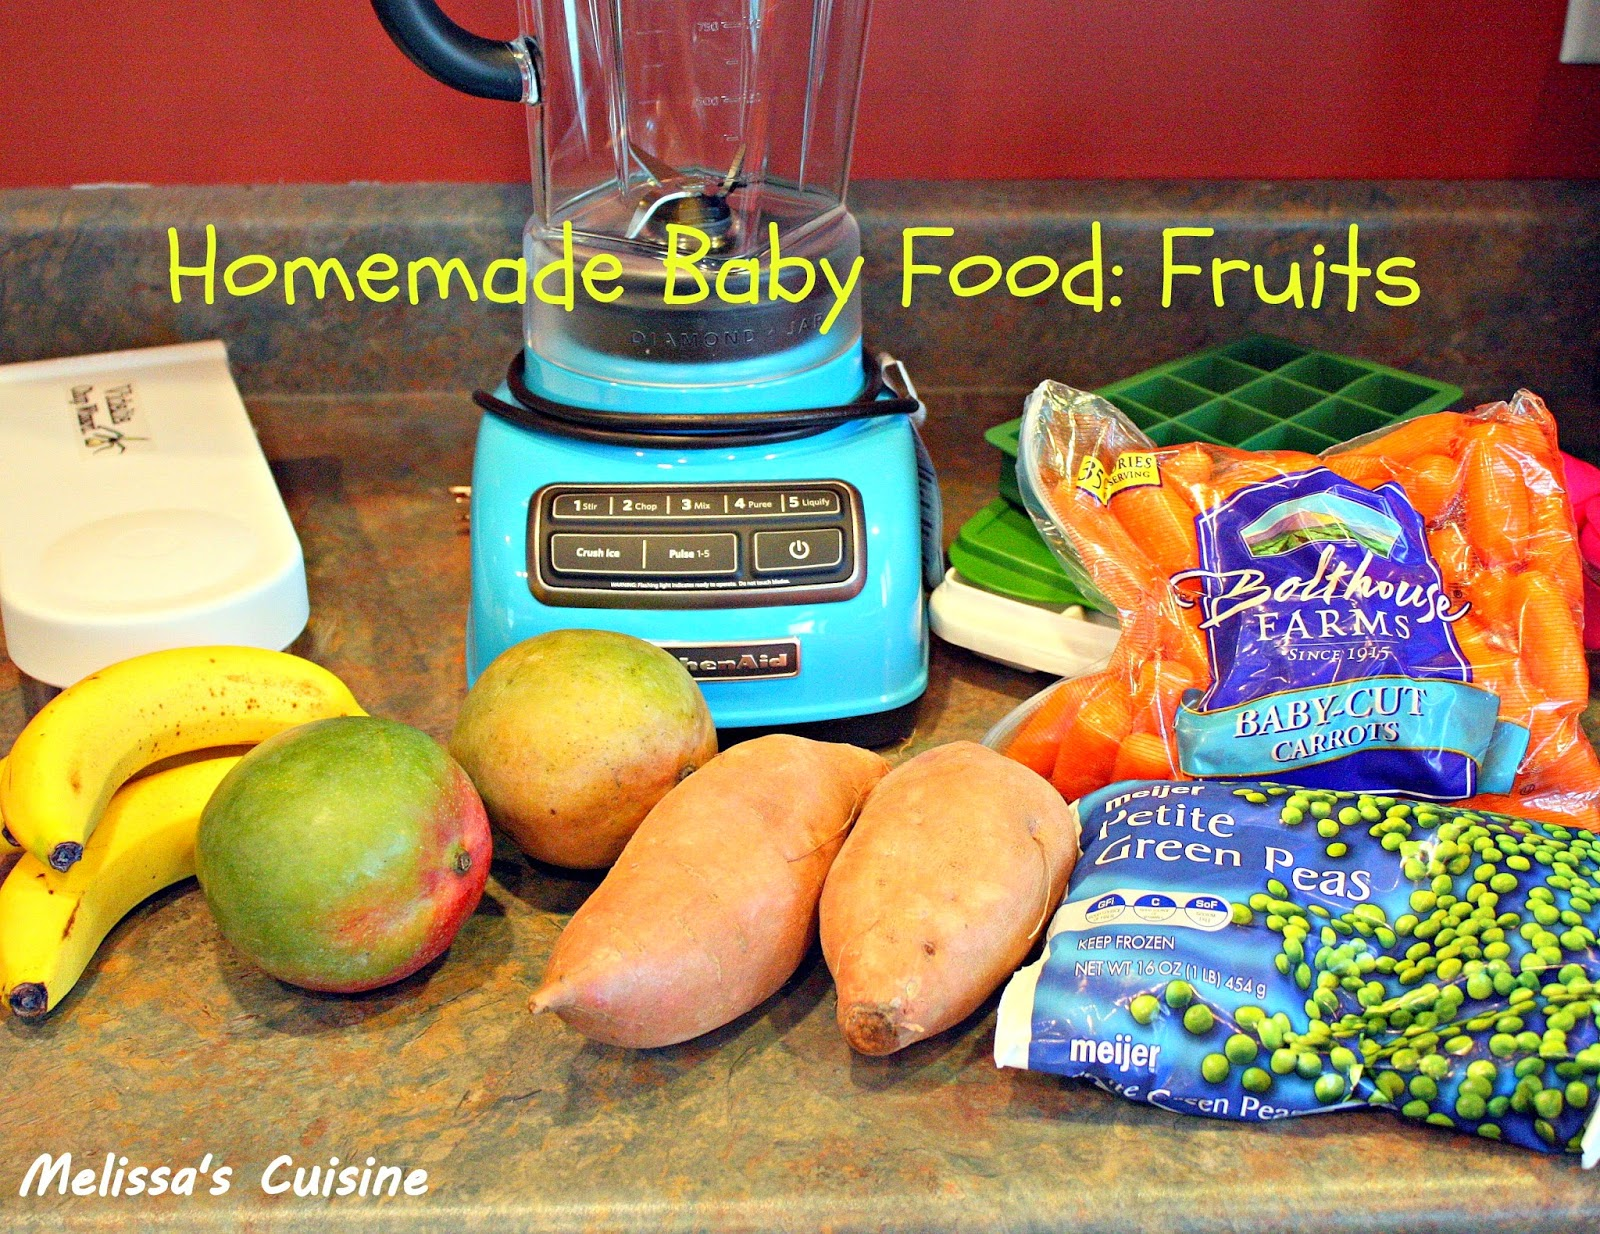 Melissa's Cuisine:  Homemade Baby Food: Fruits